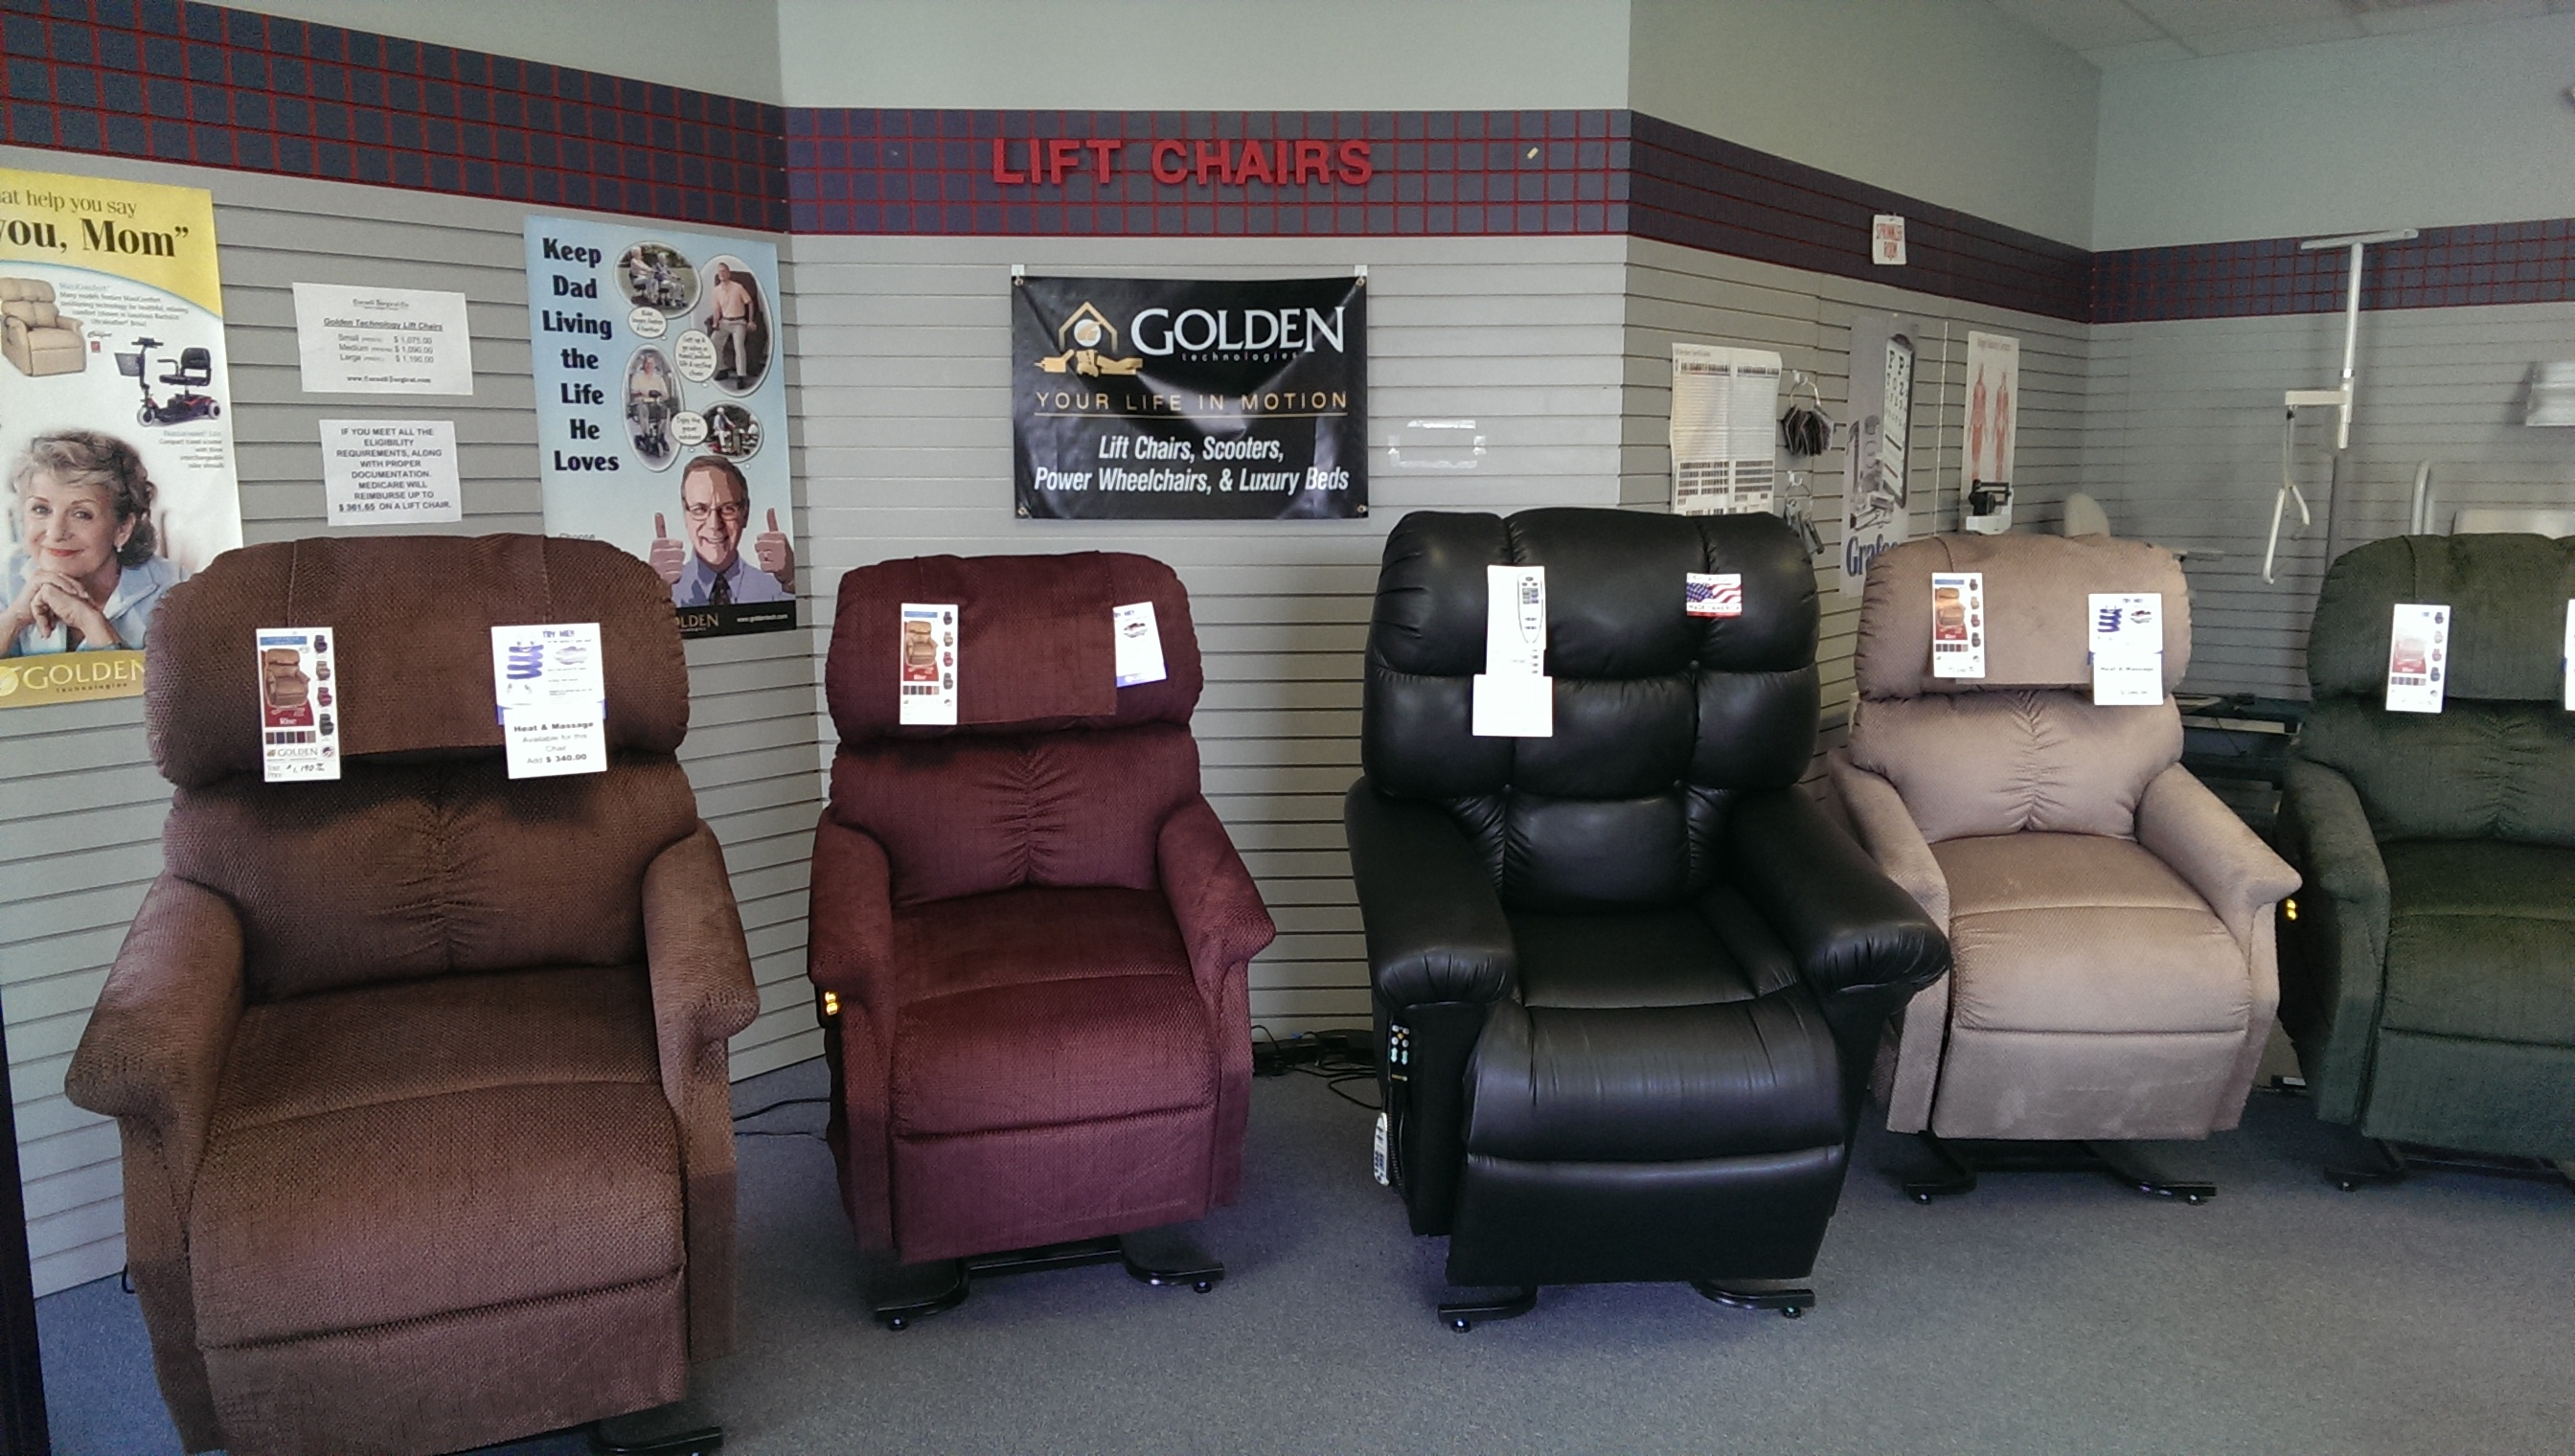 Lift Chairs by Golden Technologies